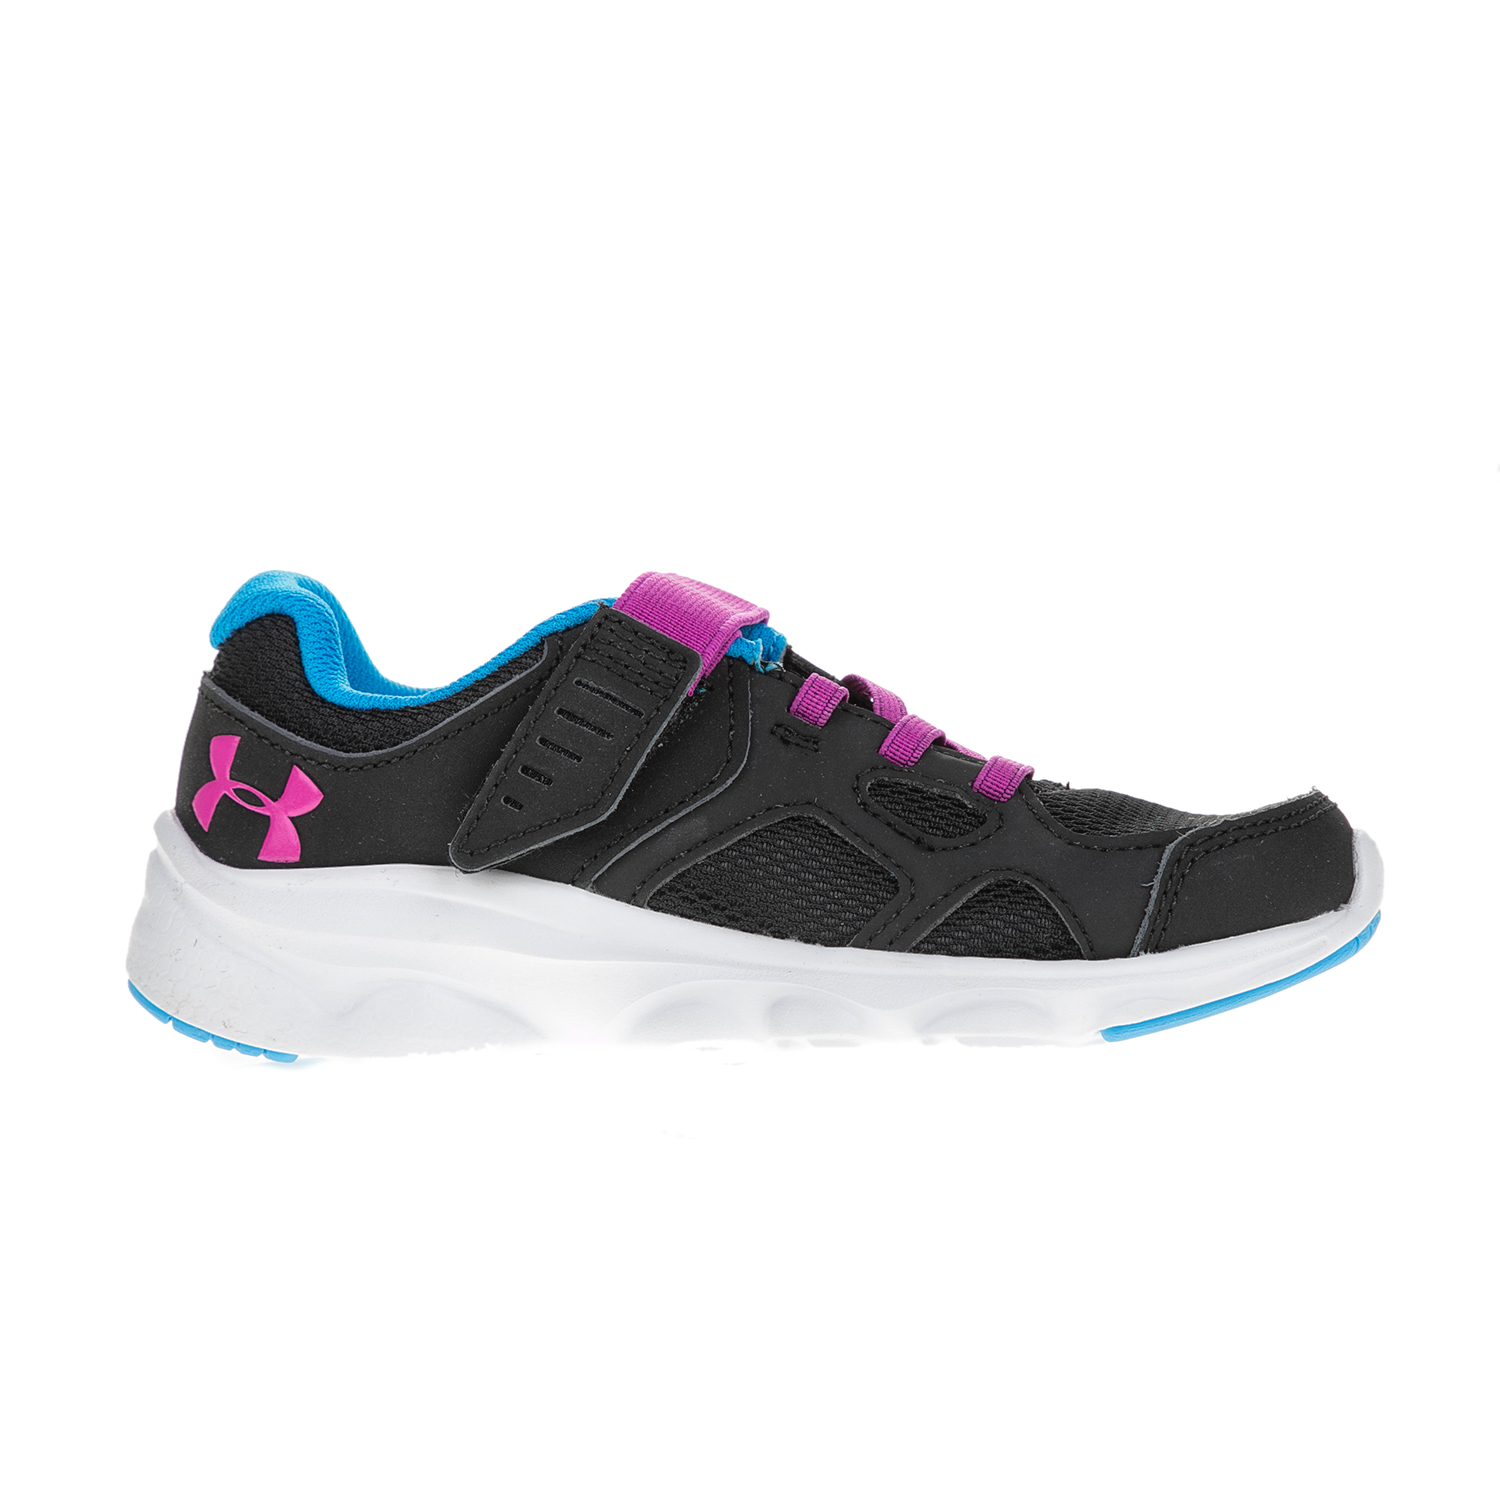 UNDER ARMOUR – Κοριτσίστικα αθληρικά παπούτσια UNDER ARMOUR GPS PACE RN AC μαύρα